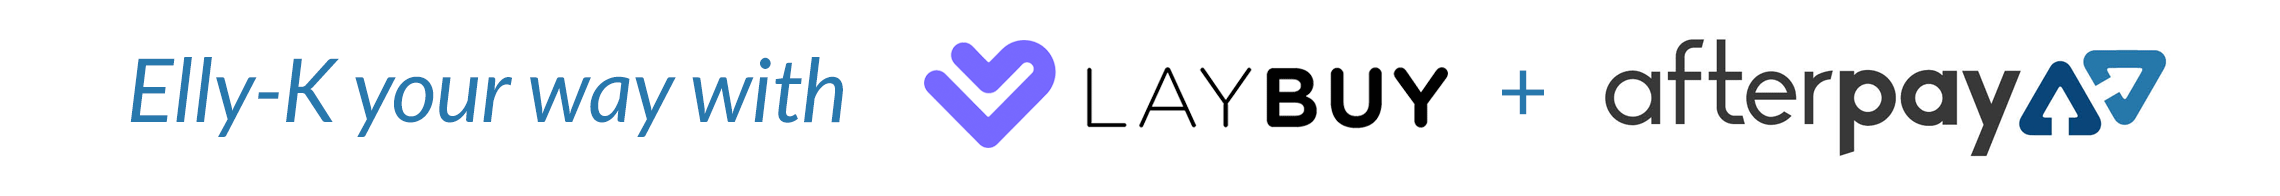 Pay with Laybuy & Afterpay at Elly-K